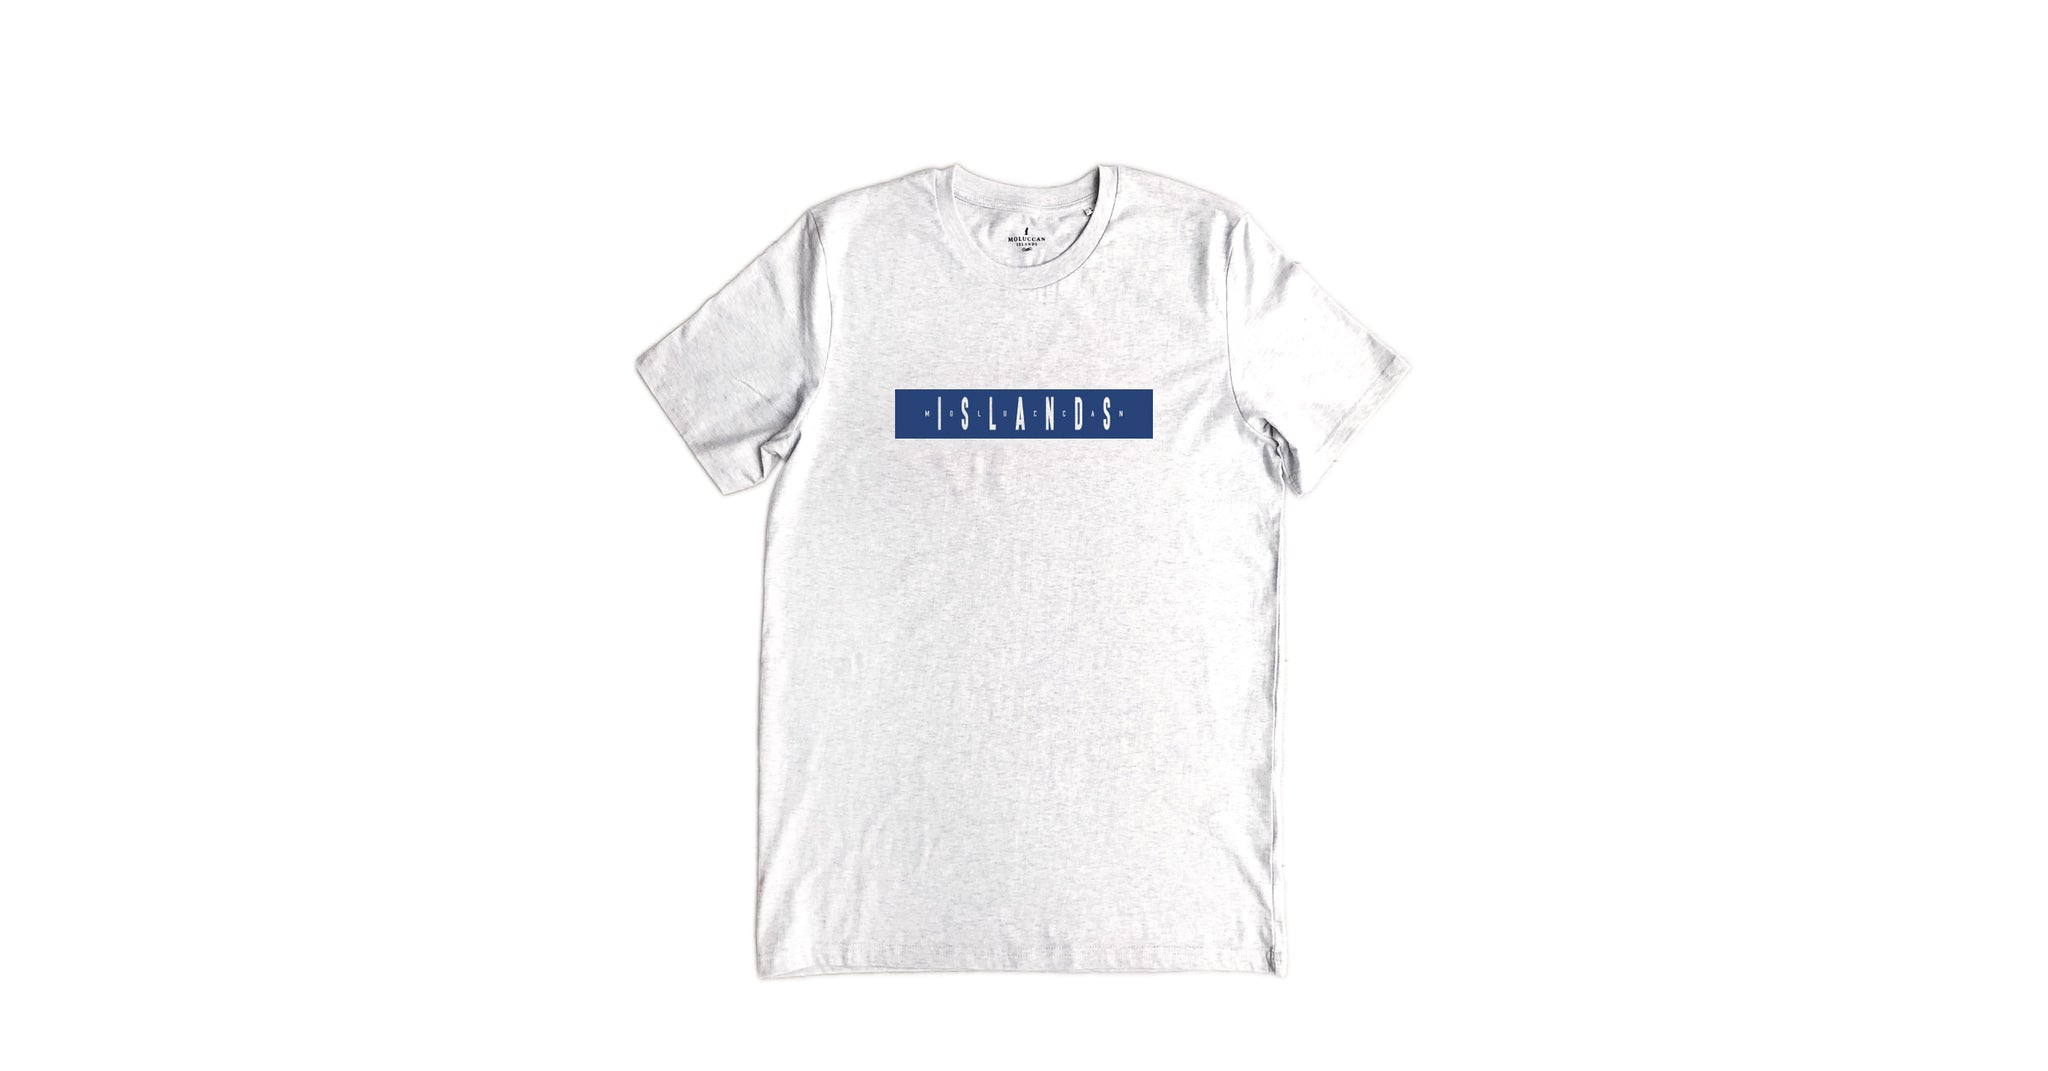 Navy Islands Stripe Tee